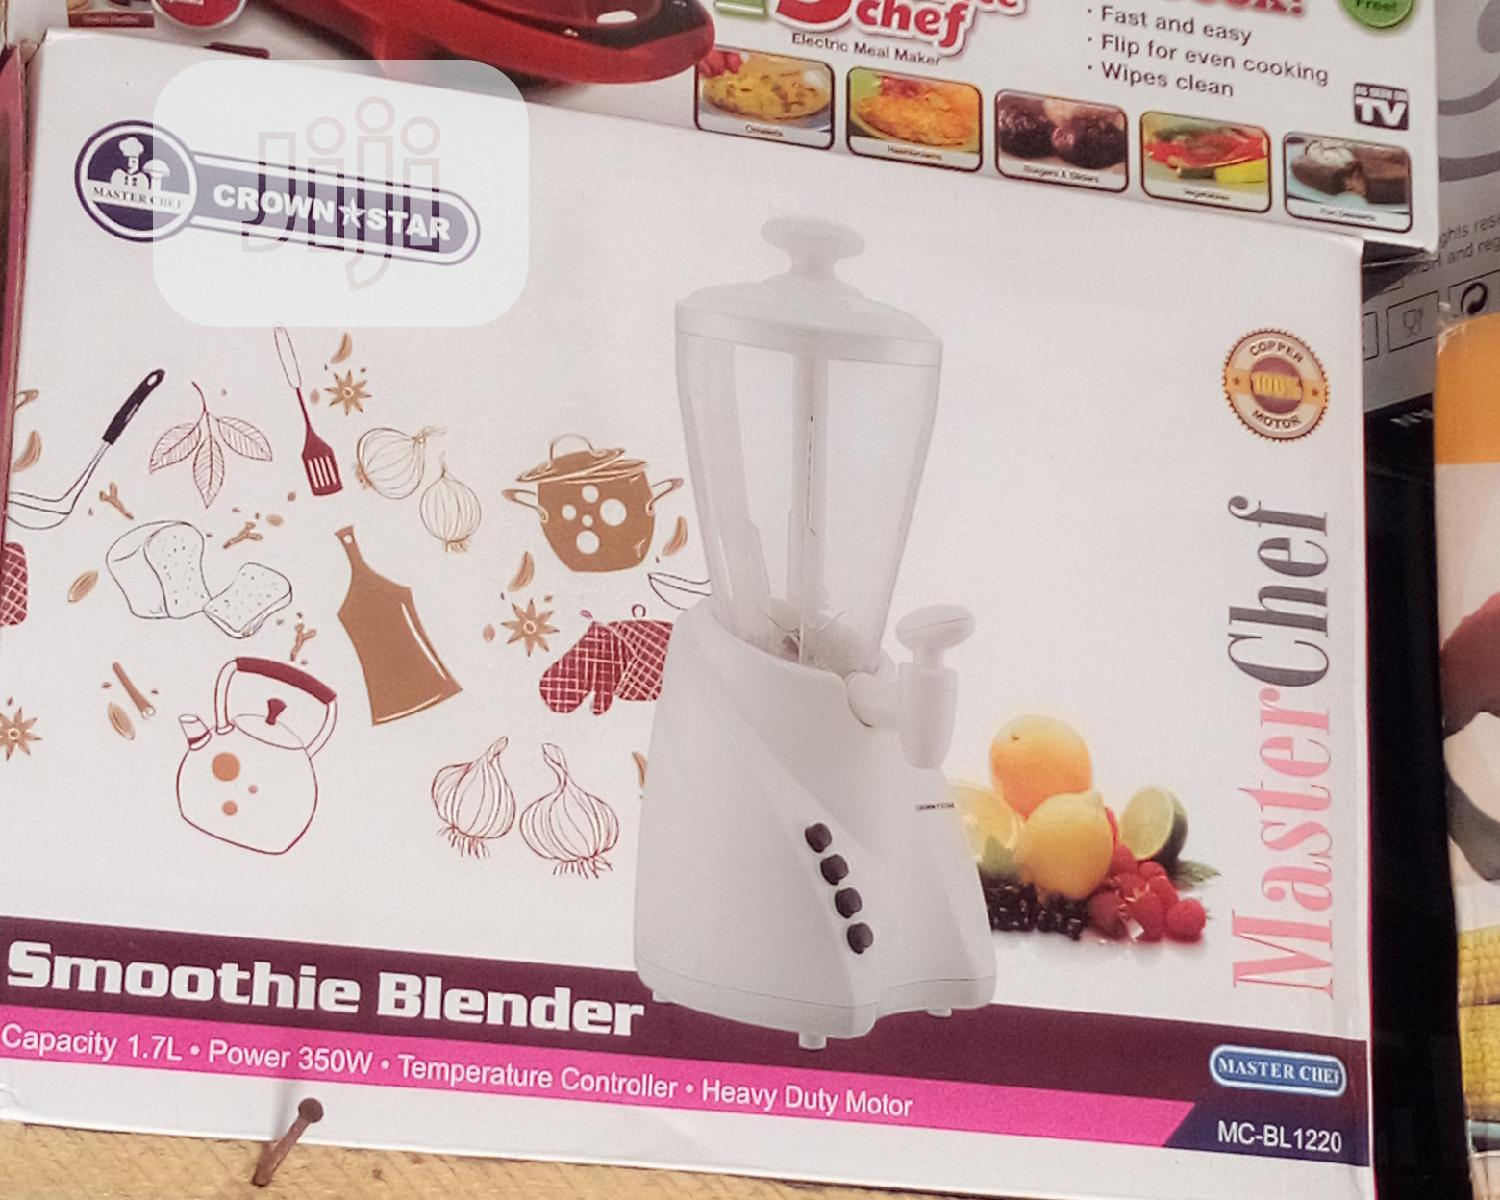 Archive: MASTER CHEF Smoothie Blender